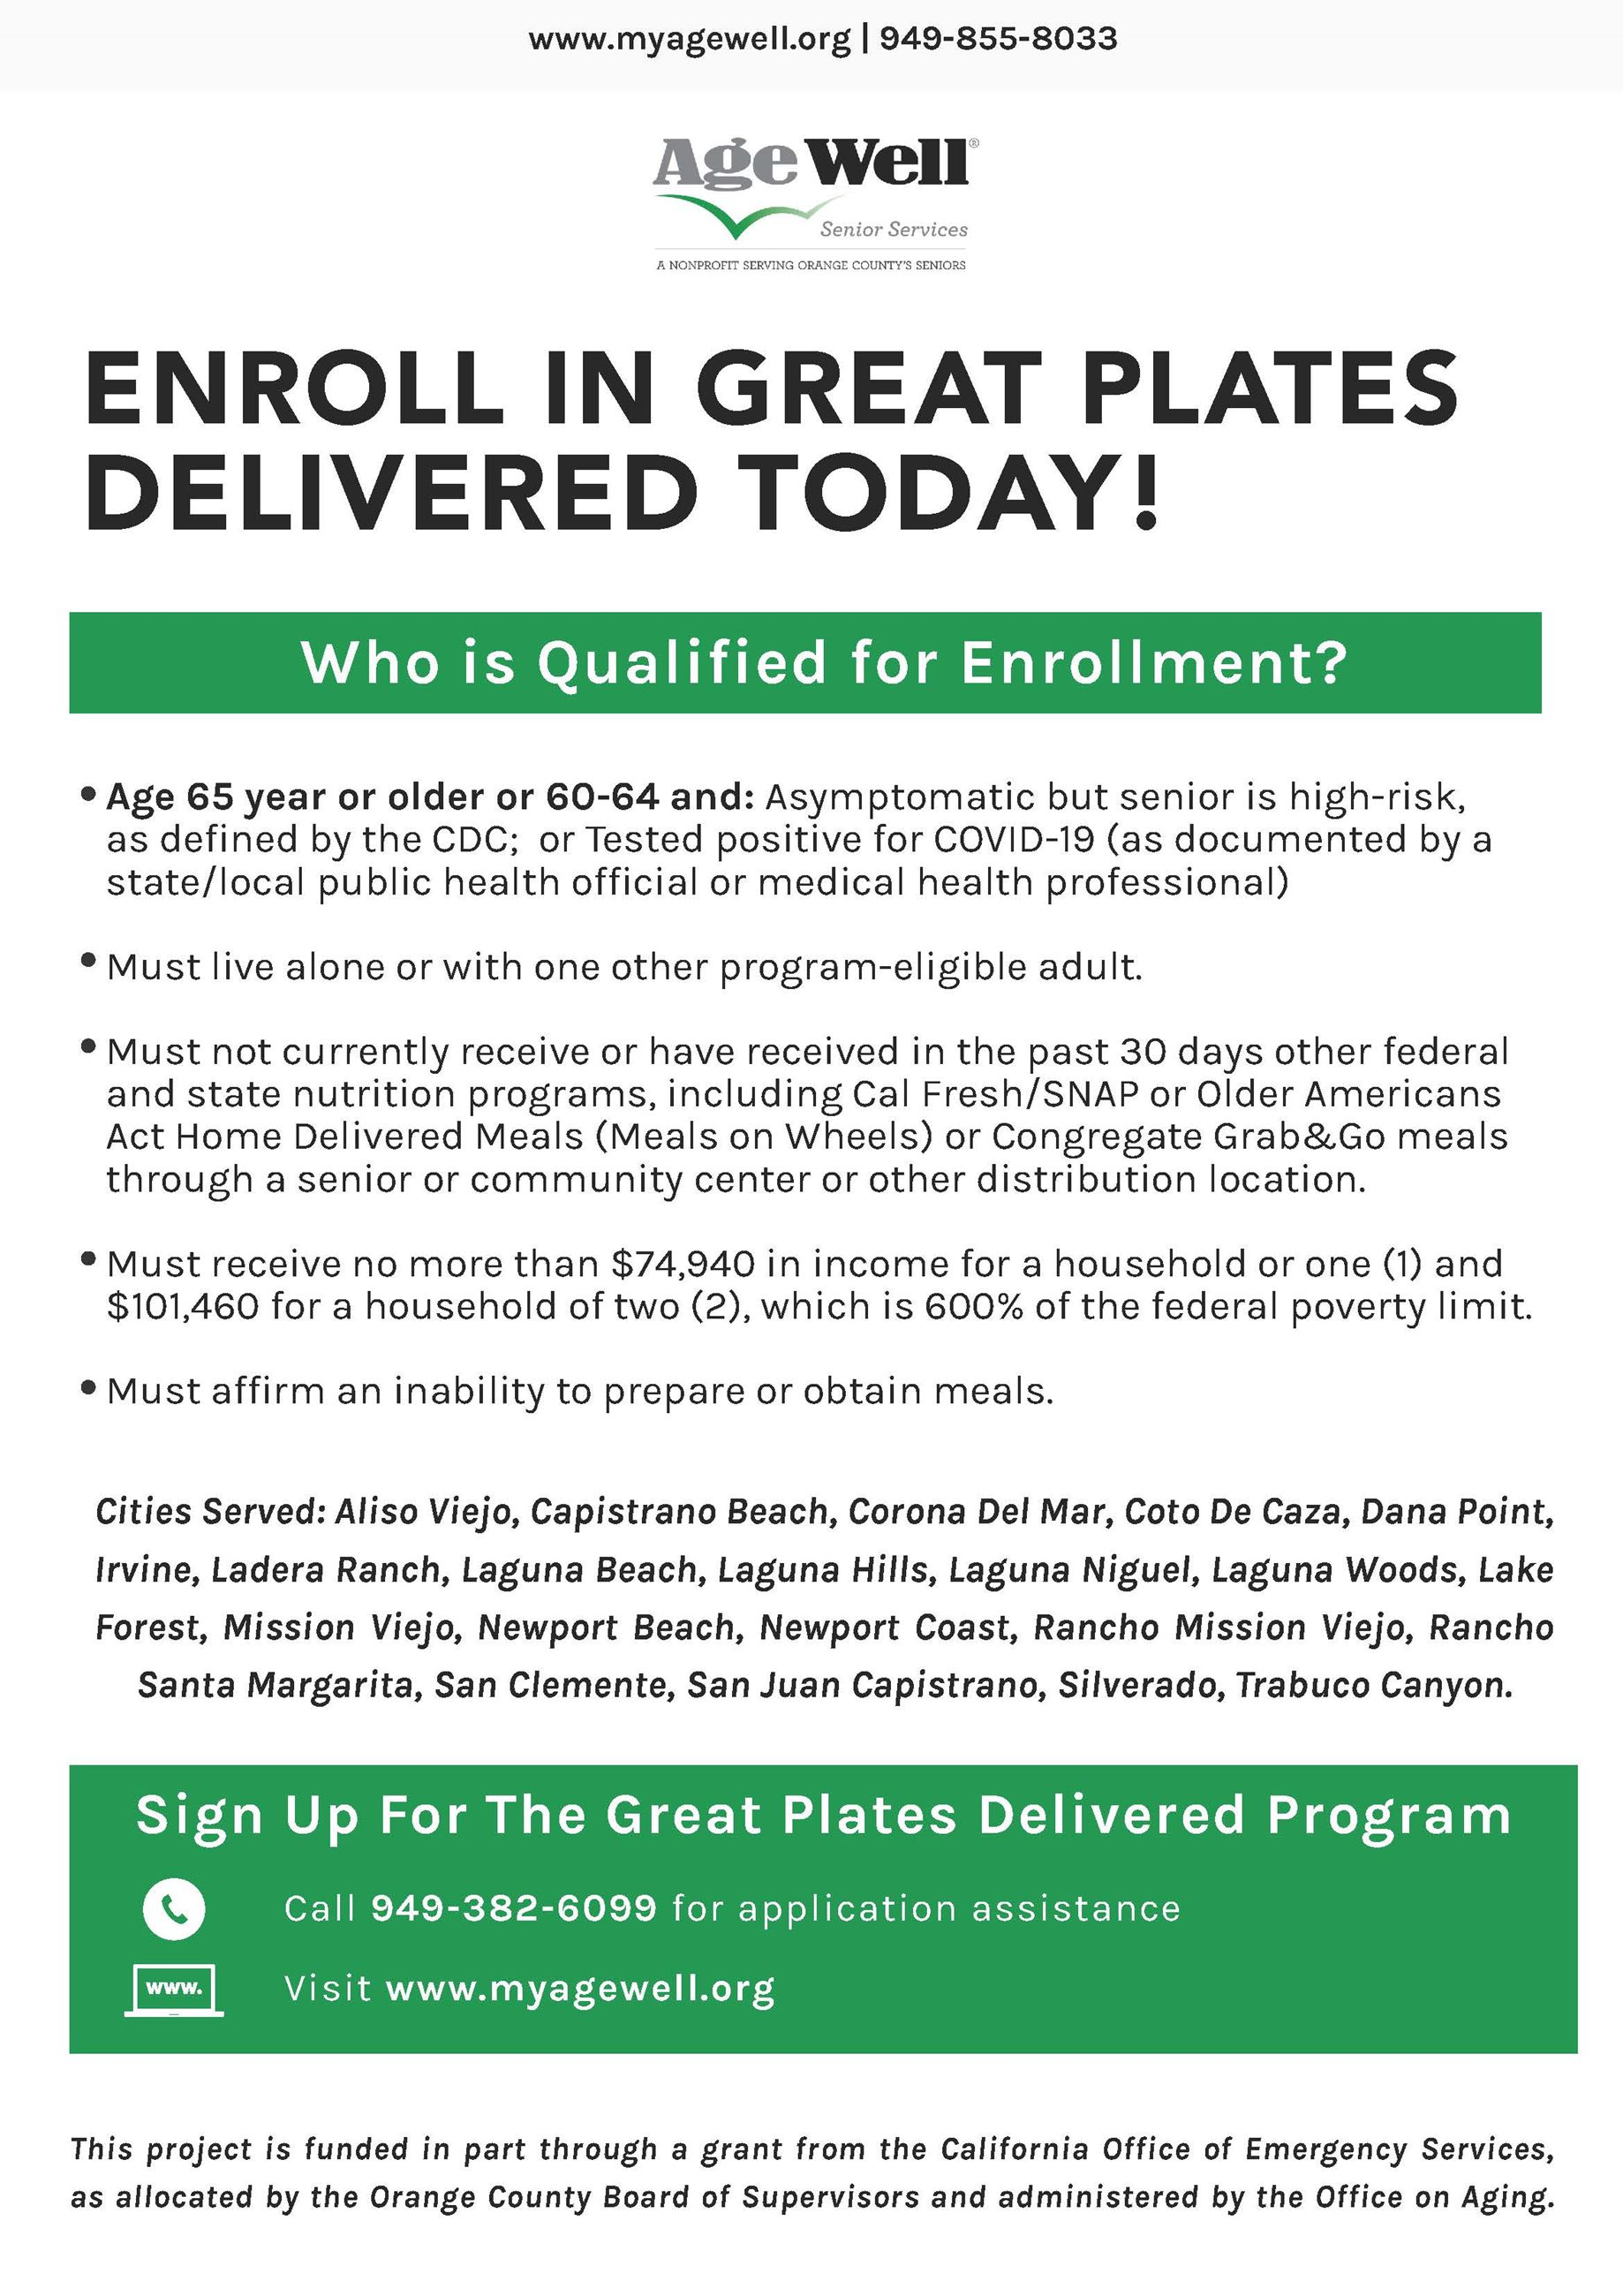 Great Plates Delivered Qualifications